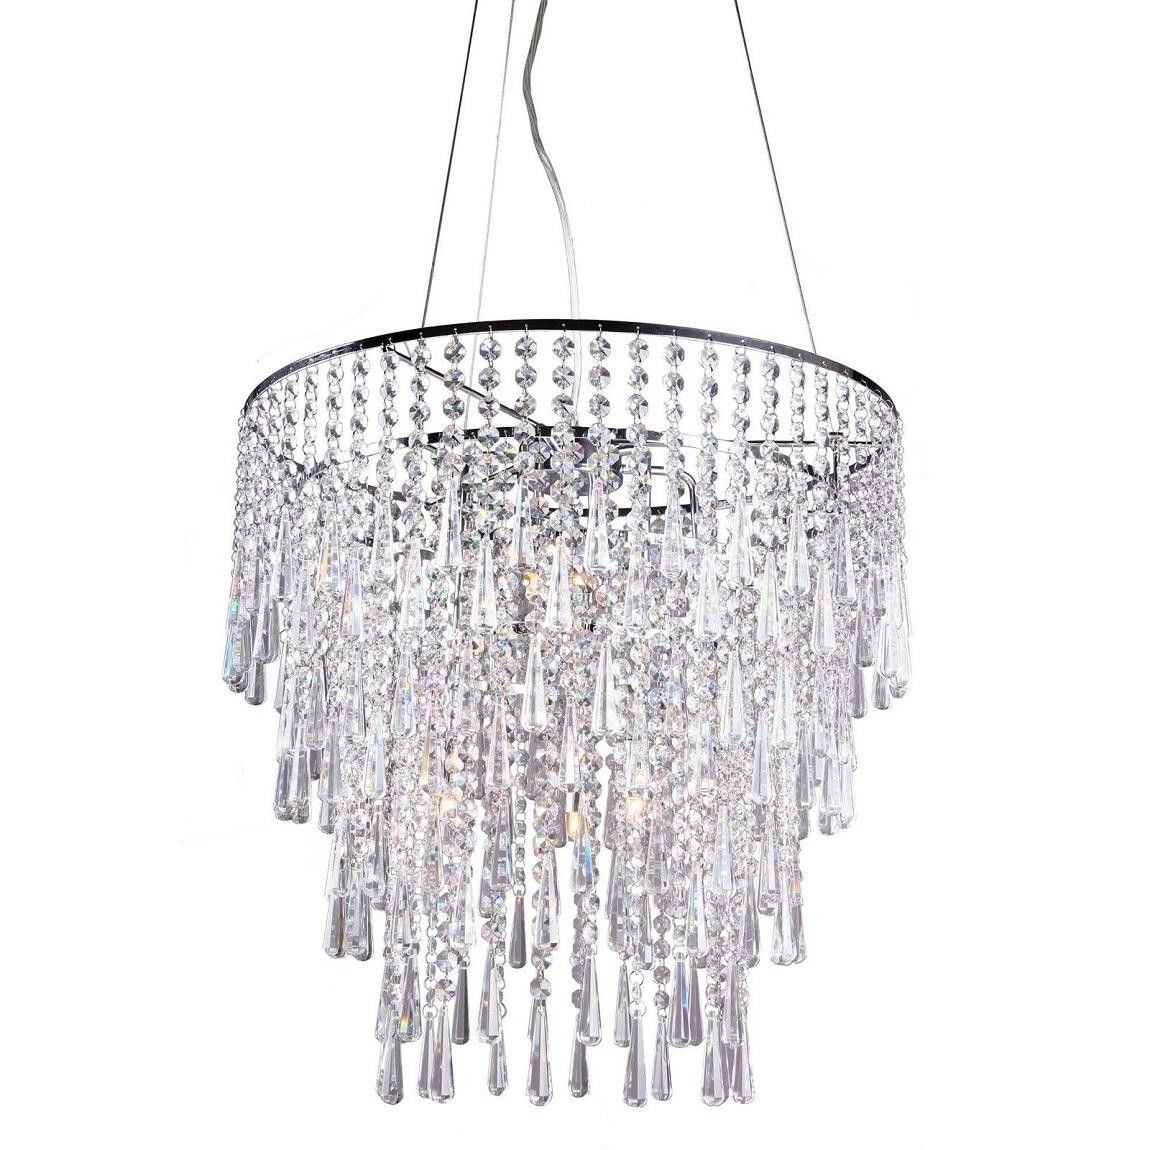 Debenhams-Aubree-pendant-light.jpg